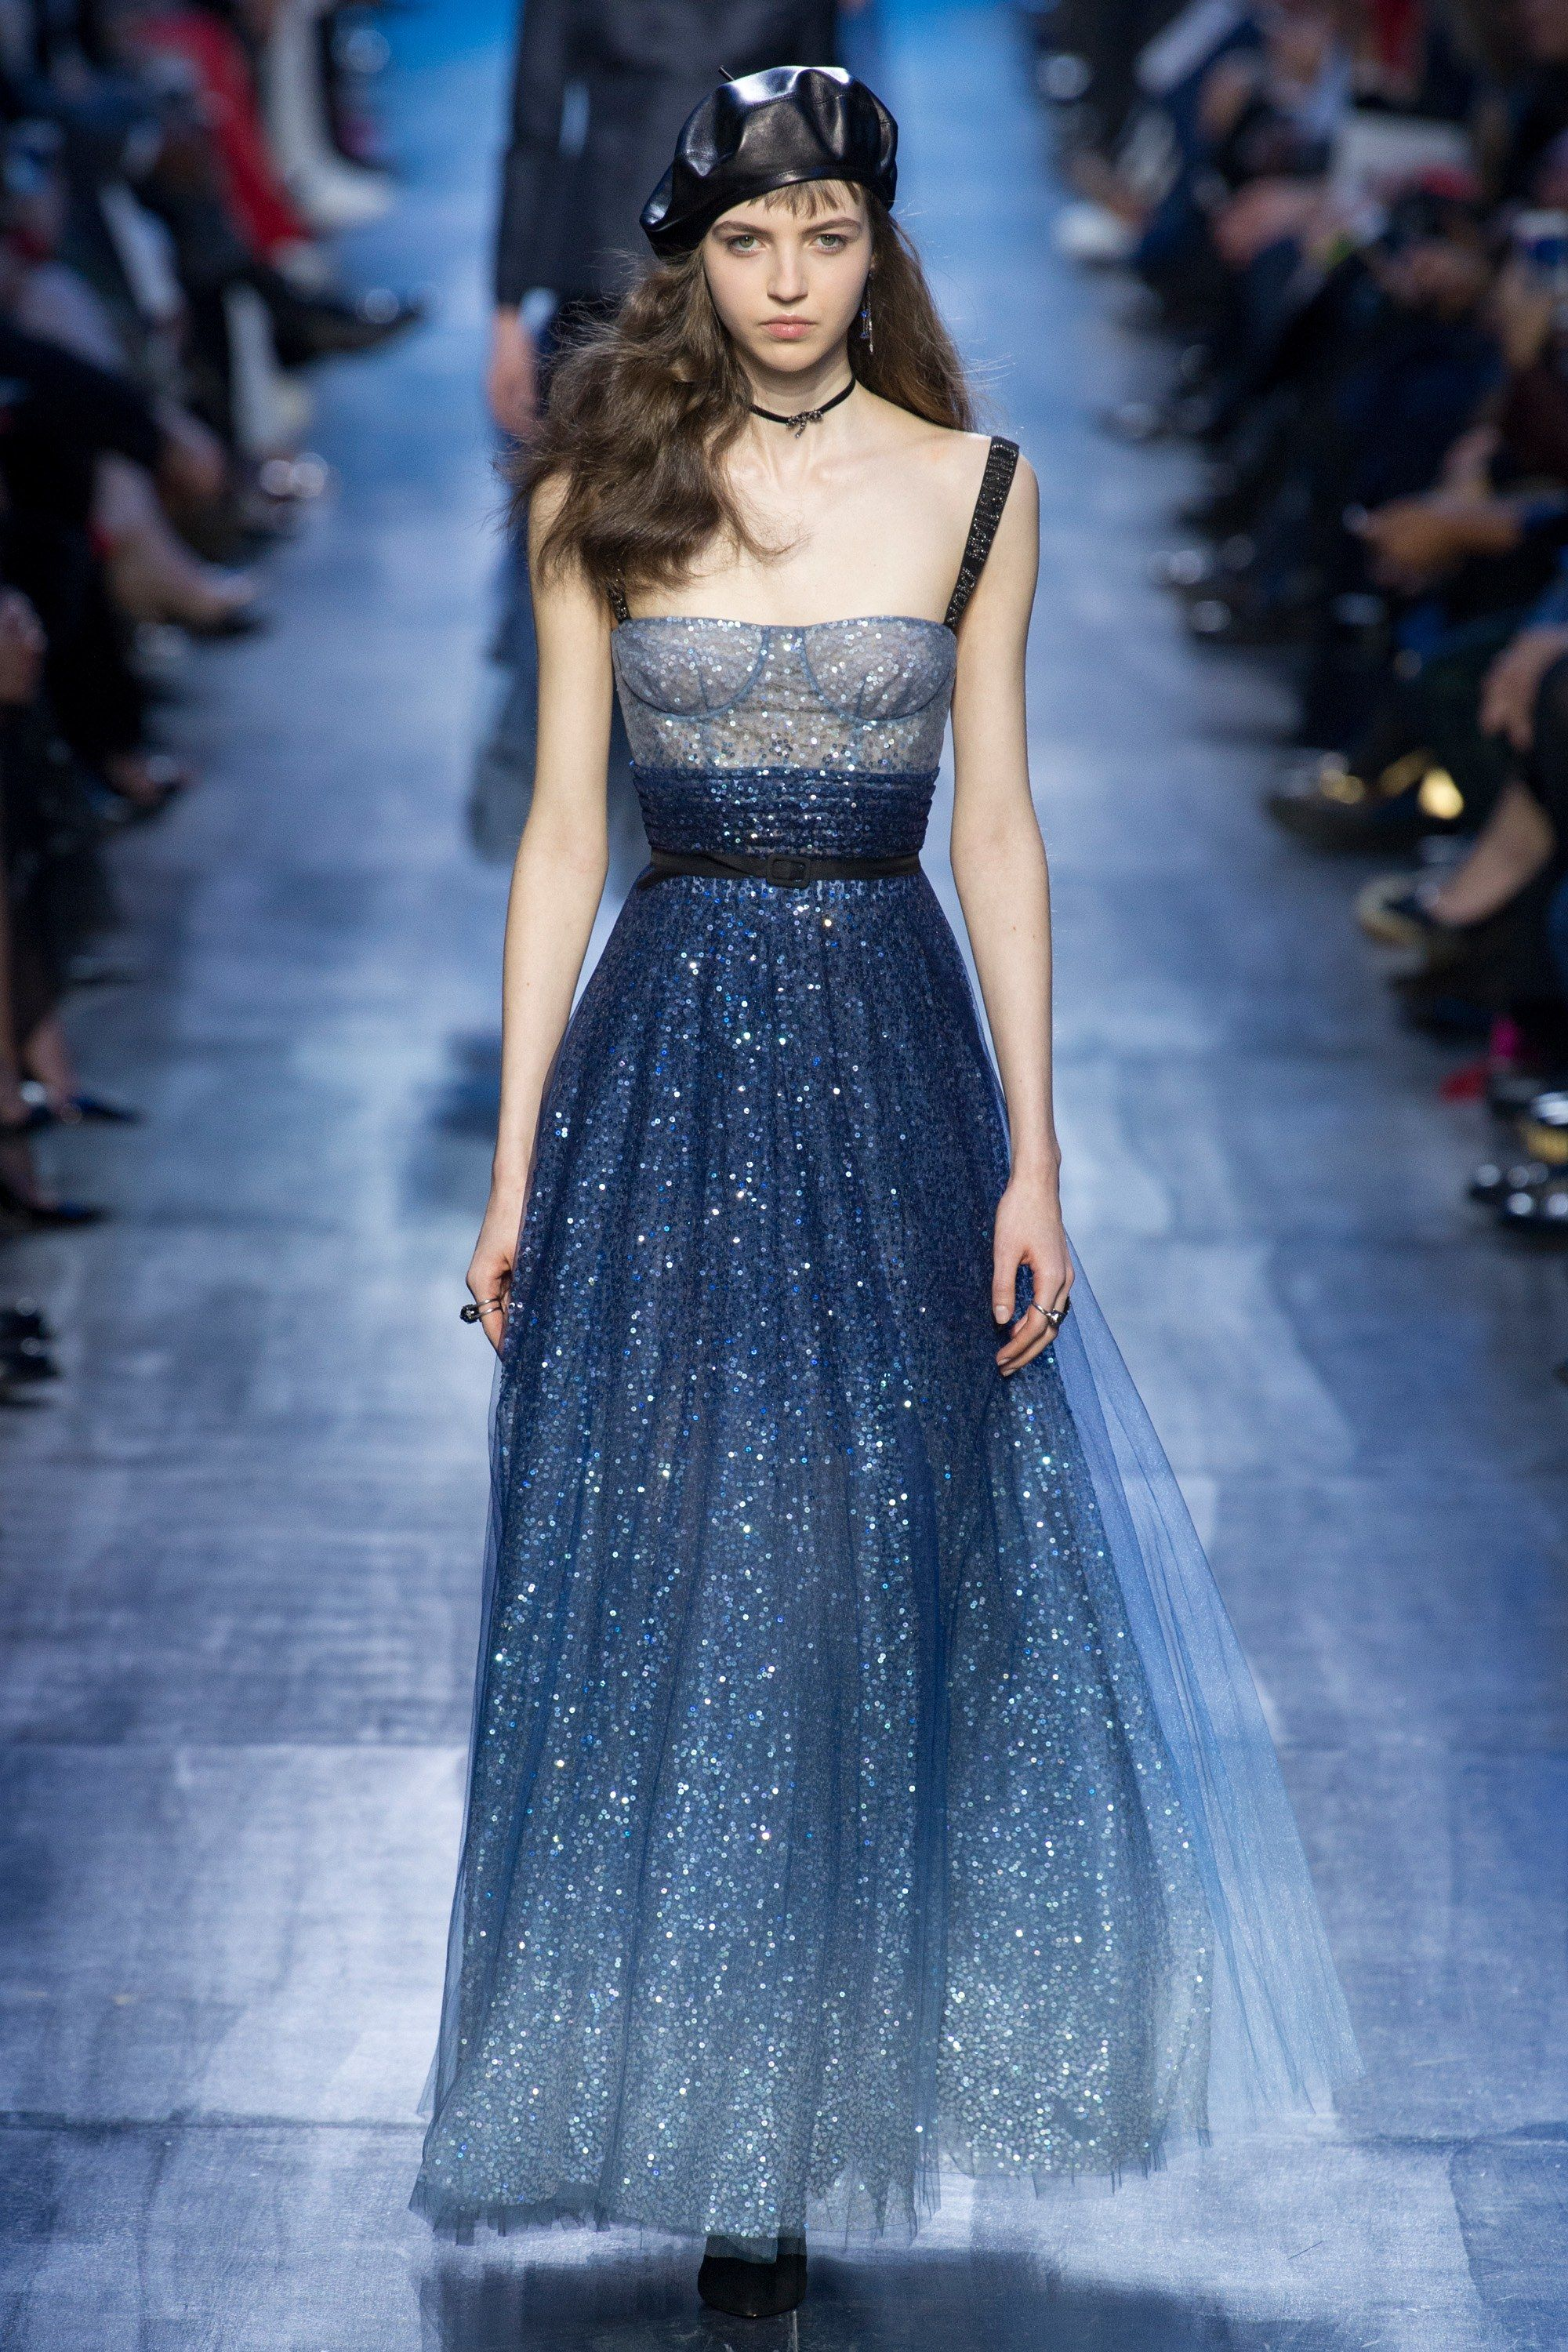 b79c713188 Christian Dior Fall 2017 Ready-to-Wear Collection Photos - Vogue